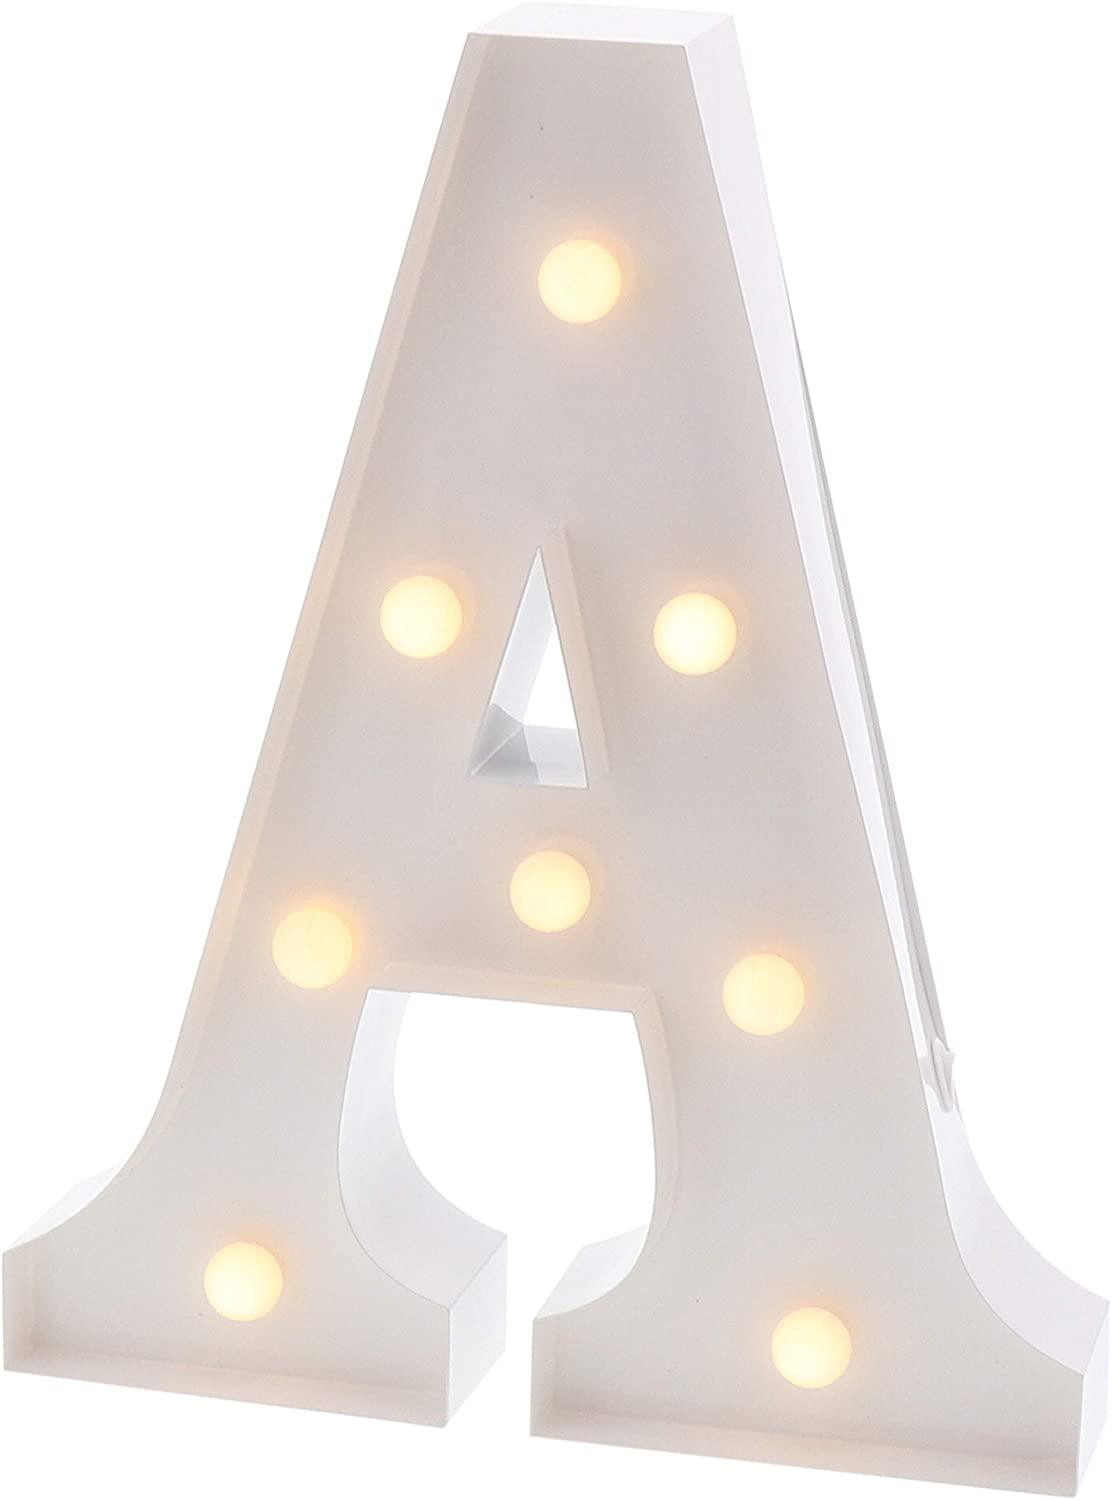 """Barnyard Designs Metal Marquee Letter A Light Up Wall Initial Wedding, Bar, Home and Nursery Letter Decoration 12"""" (White)"""